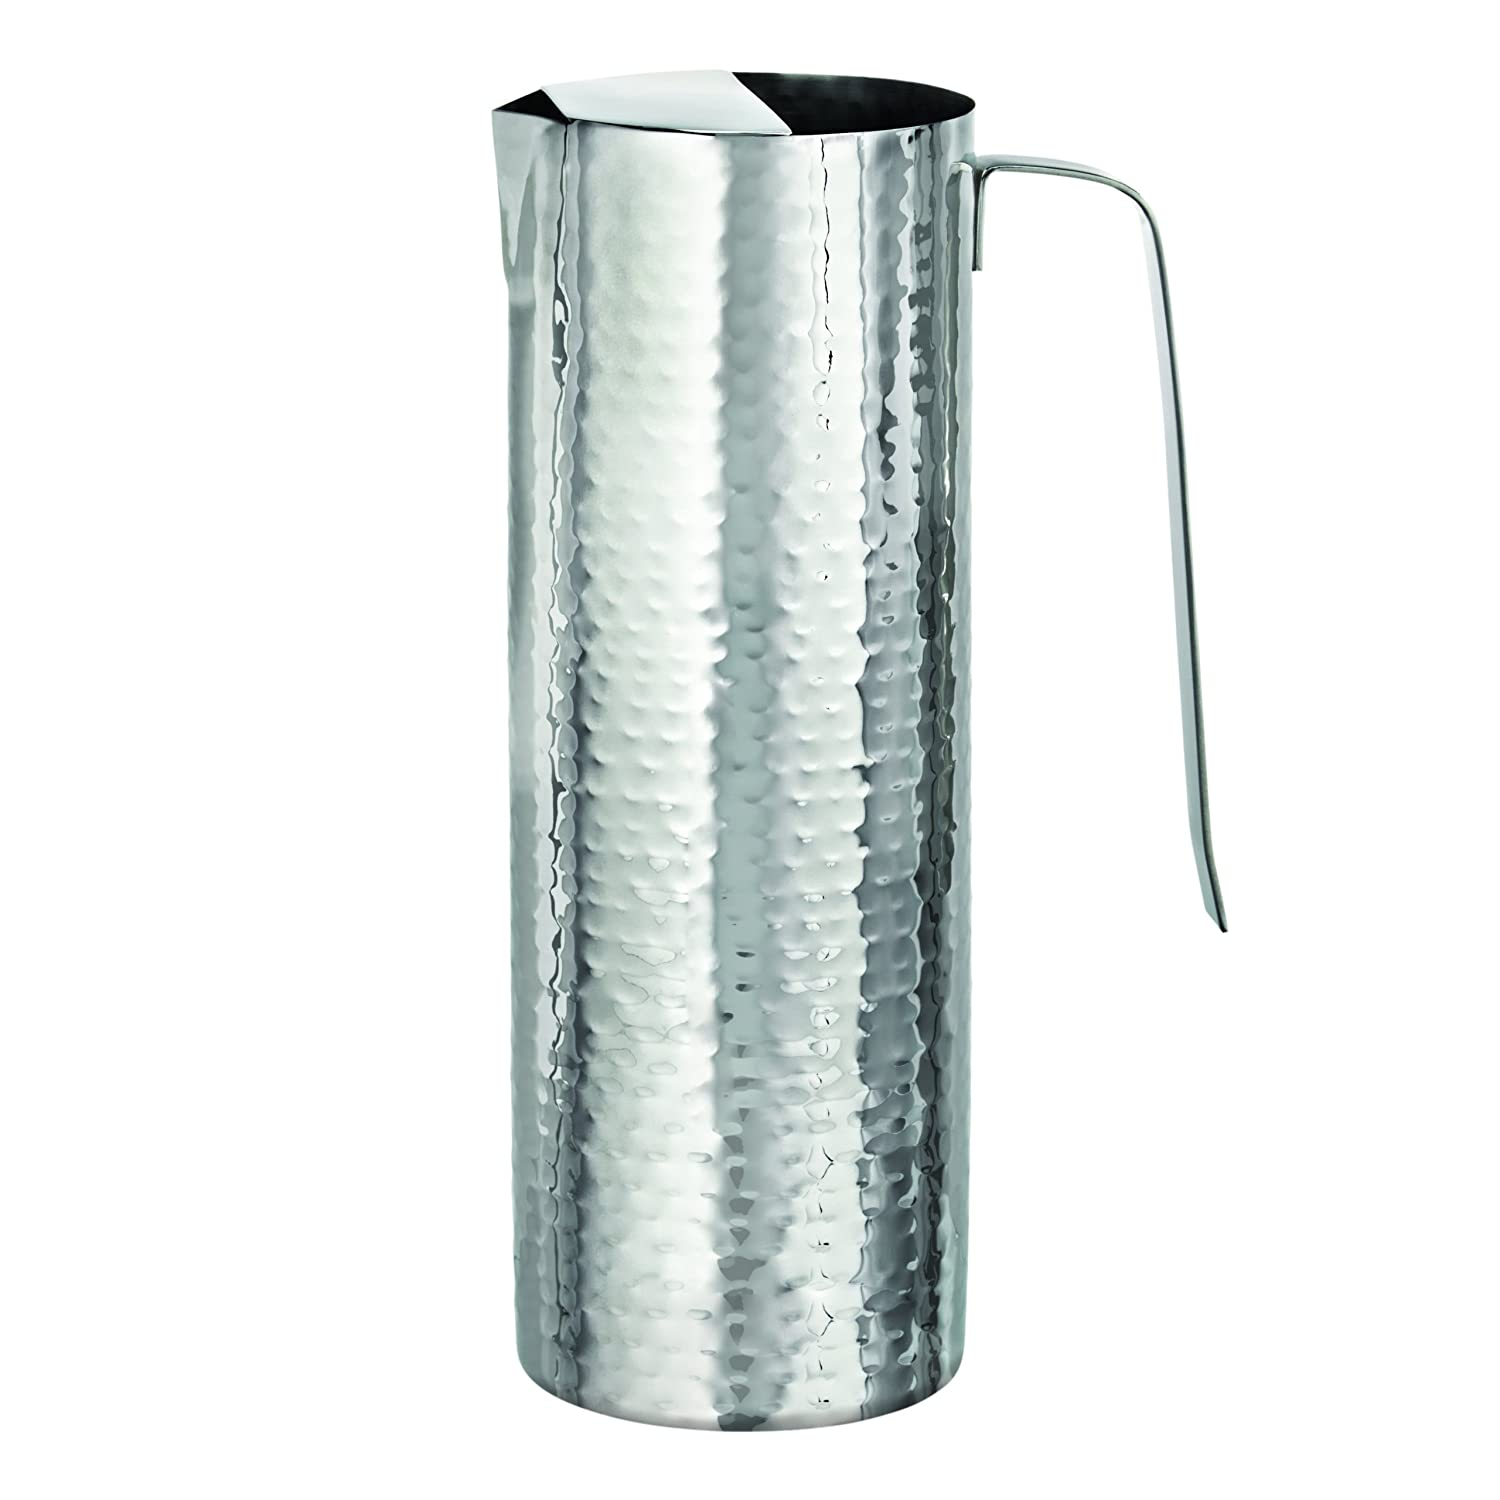 amazoncom  marquis by waterford vintage stainless steel pitcher  - amazoncom  marquis by waterford vintage stainless steel pitcher flatwareforks carafes  pitchers